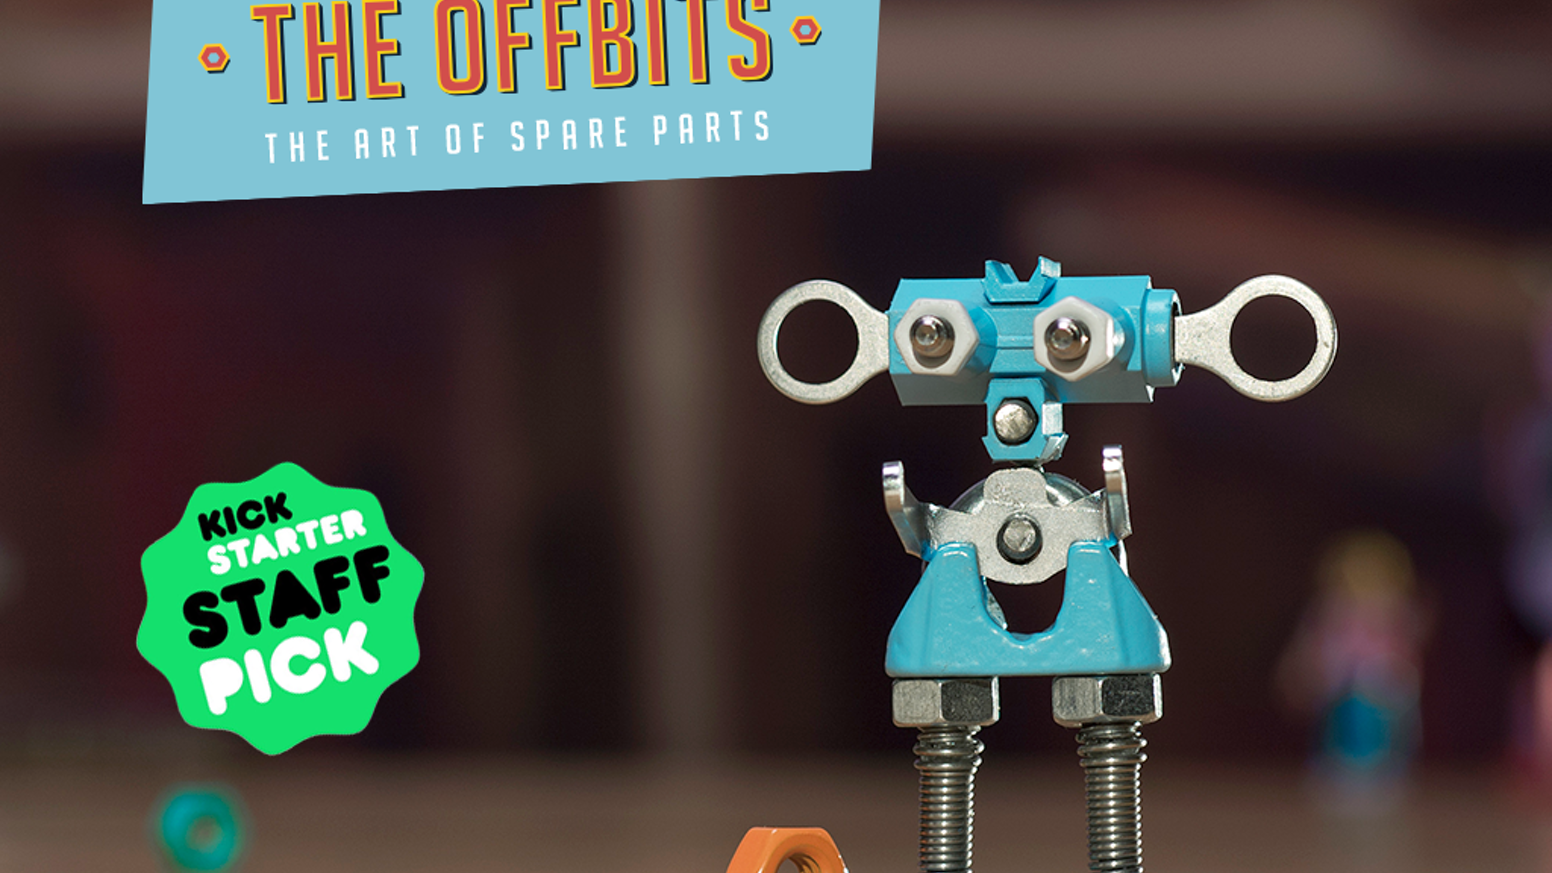 The OFFBITS are build-it-yourself robots made of up-cycled components; connect the bots and create your own designs! Delivered April 2016, now available for purchase on our site!